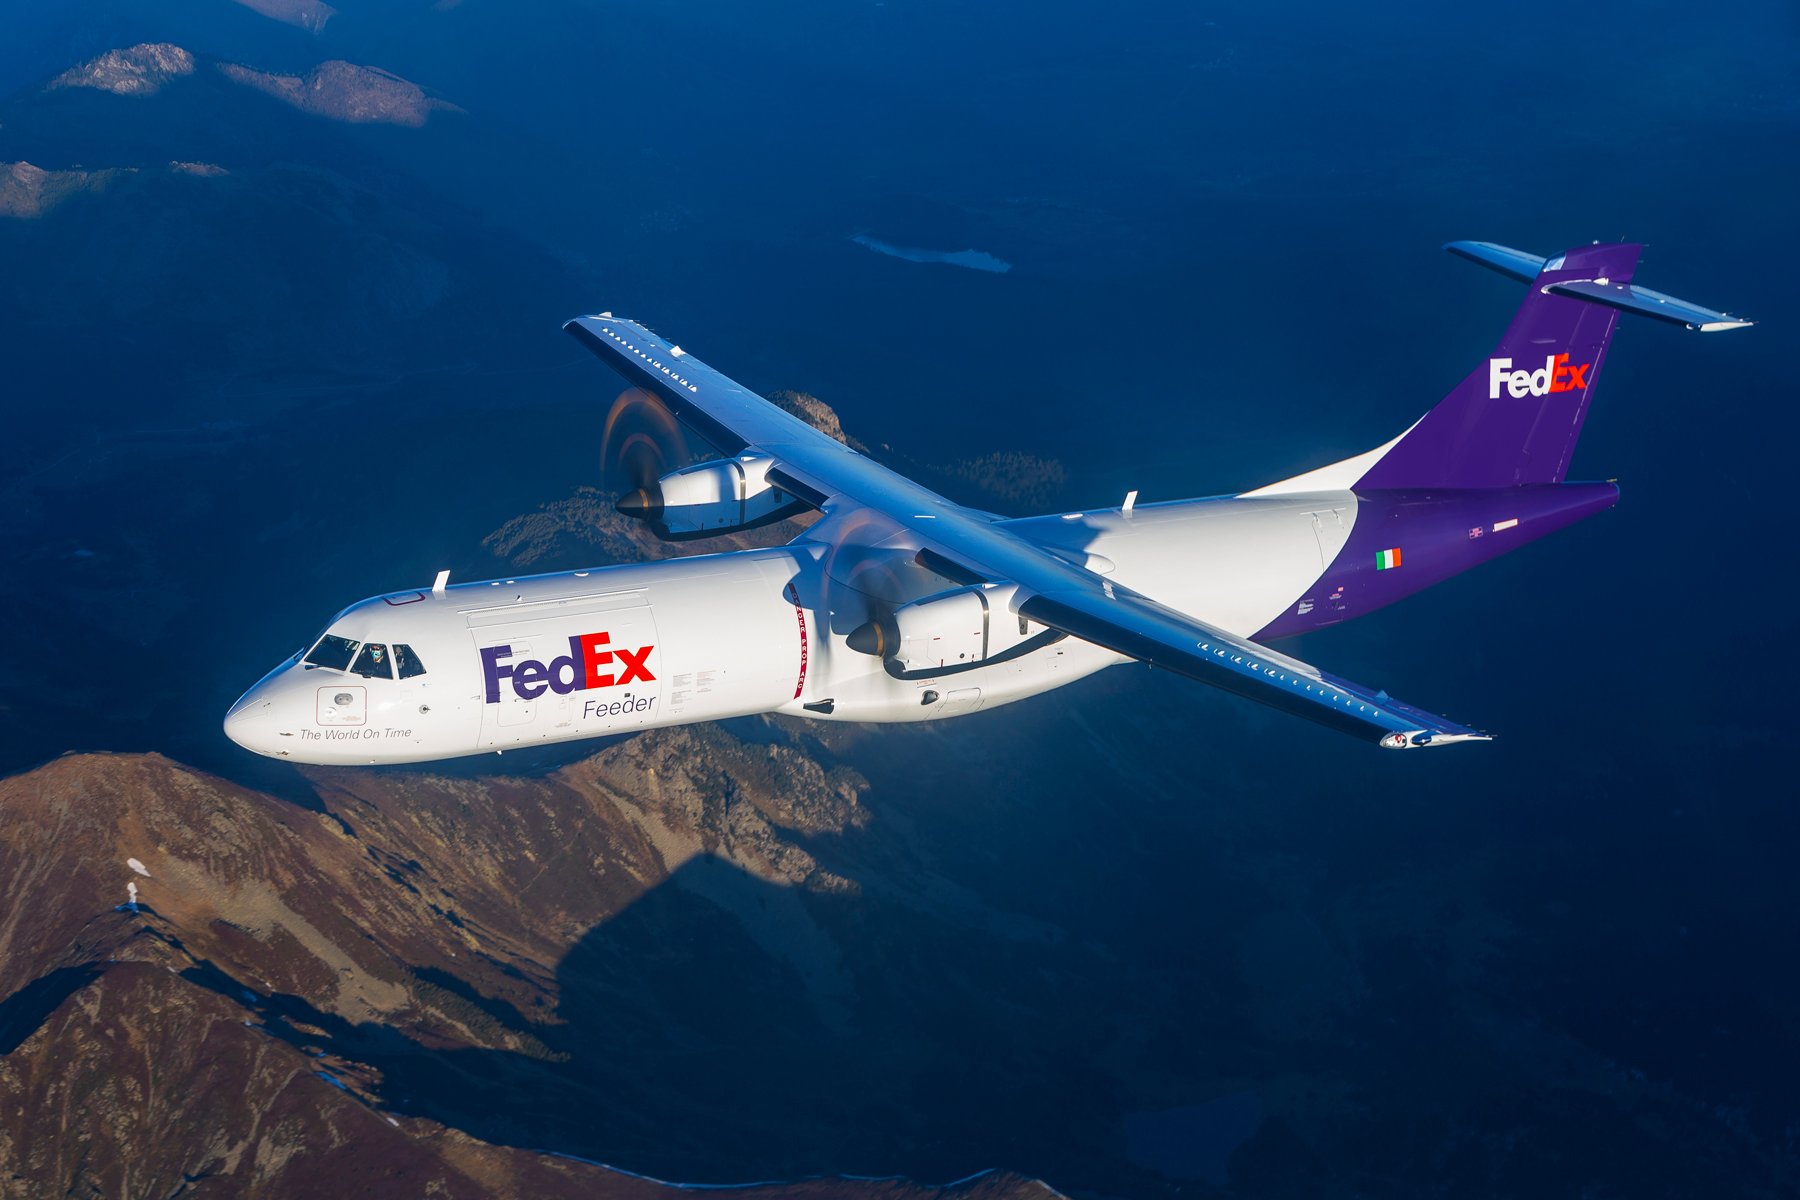 FedEx Express modernises fleet with delivery of first purpose-built regional ATR freighter